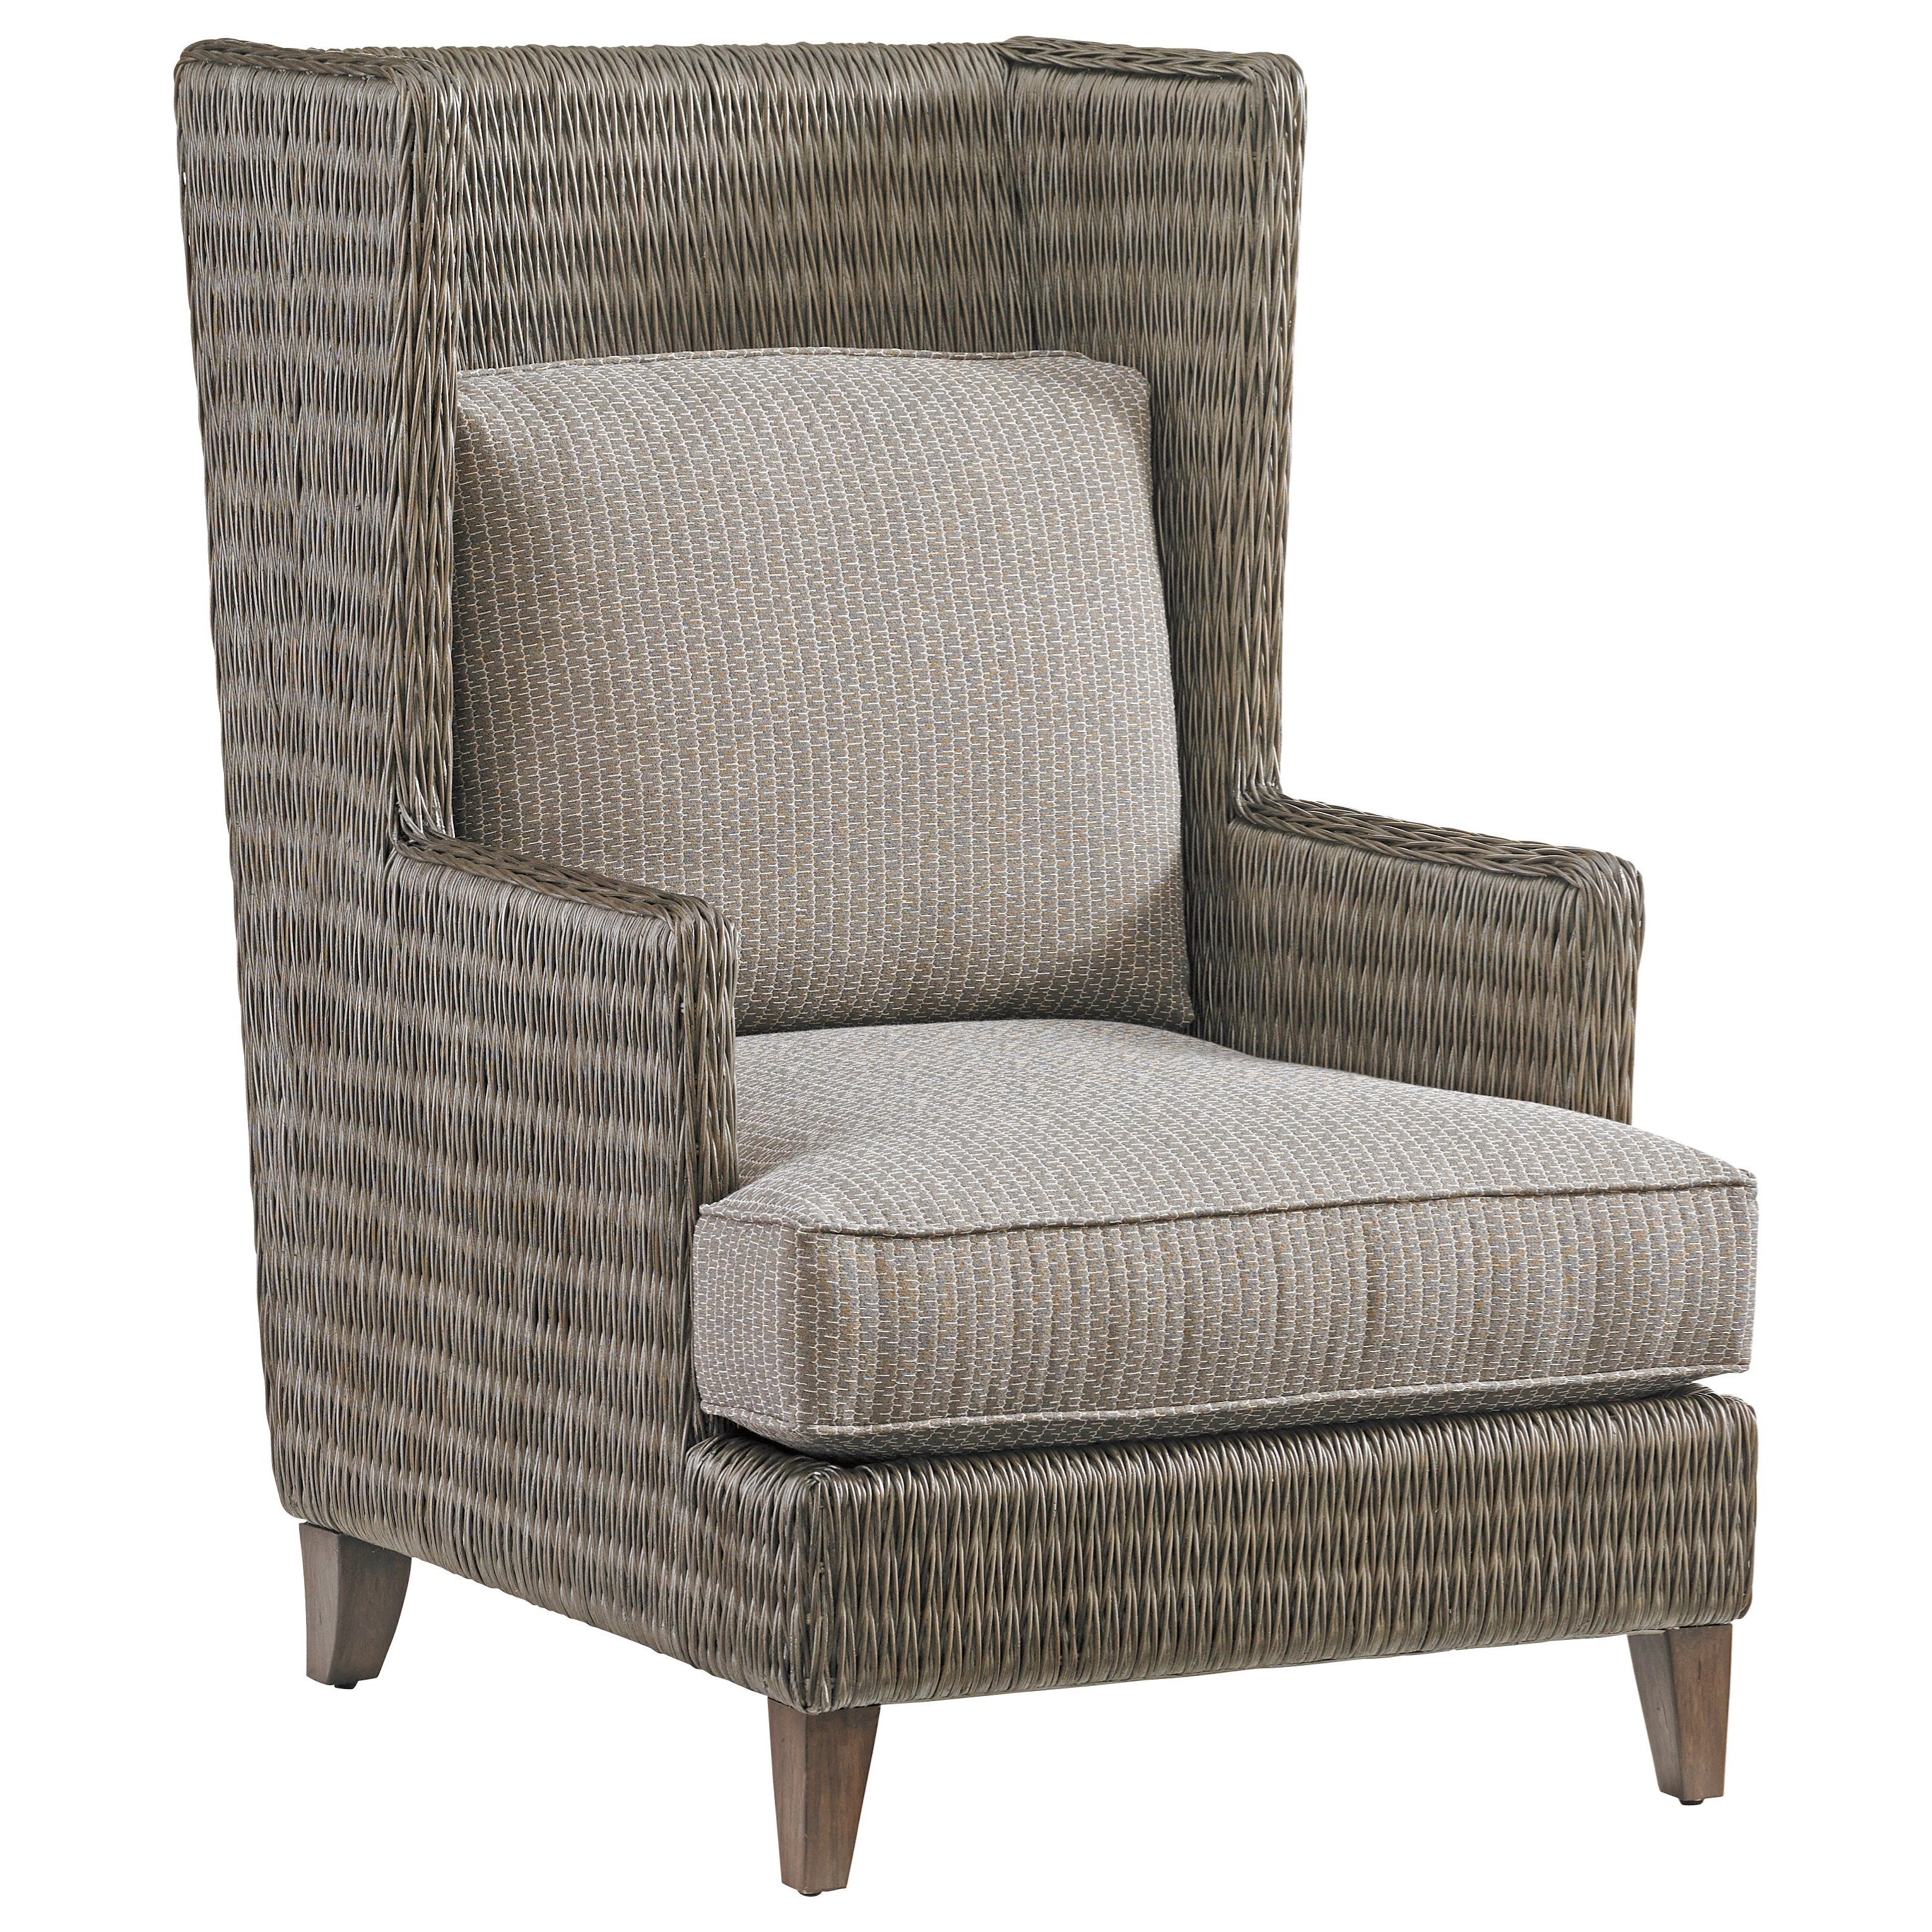 Cypress Point Randall Chair by Tommy Bahama Home at Baer's Furniture